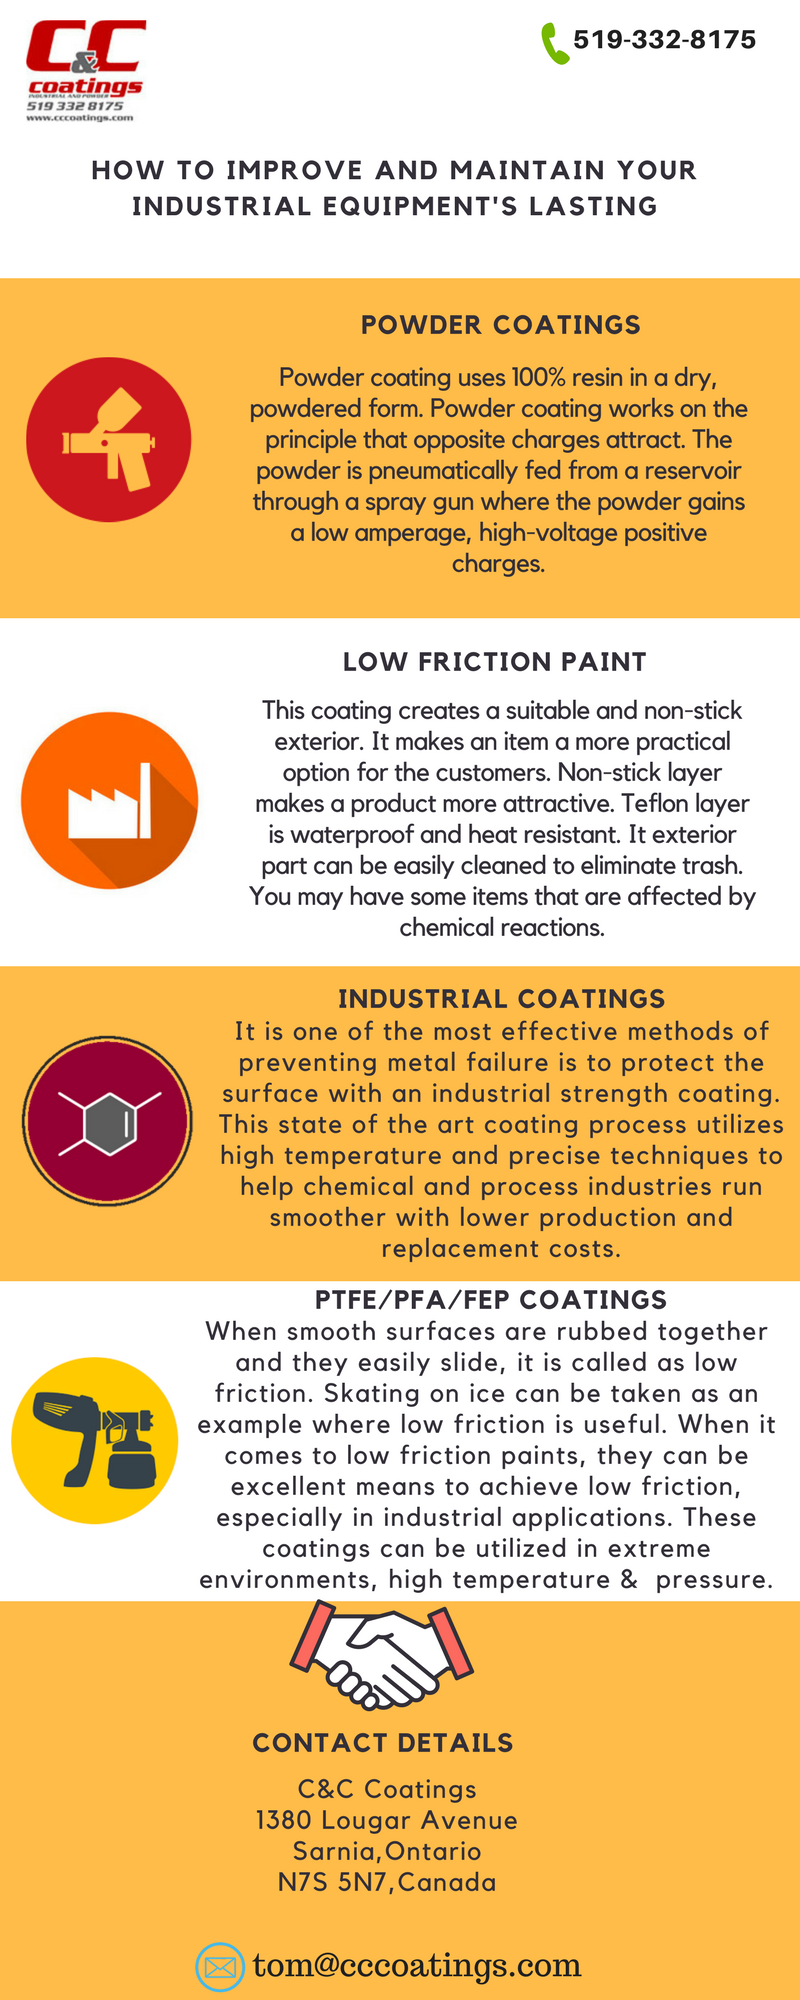 Teflon coating spray is a product that used to paint a